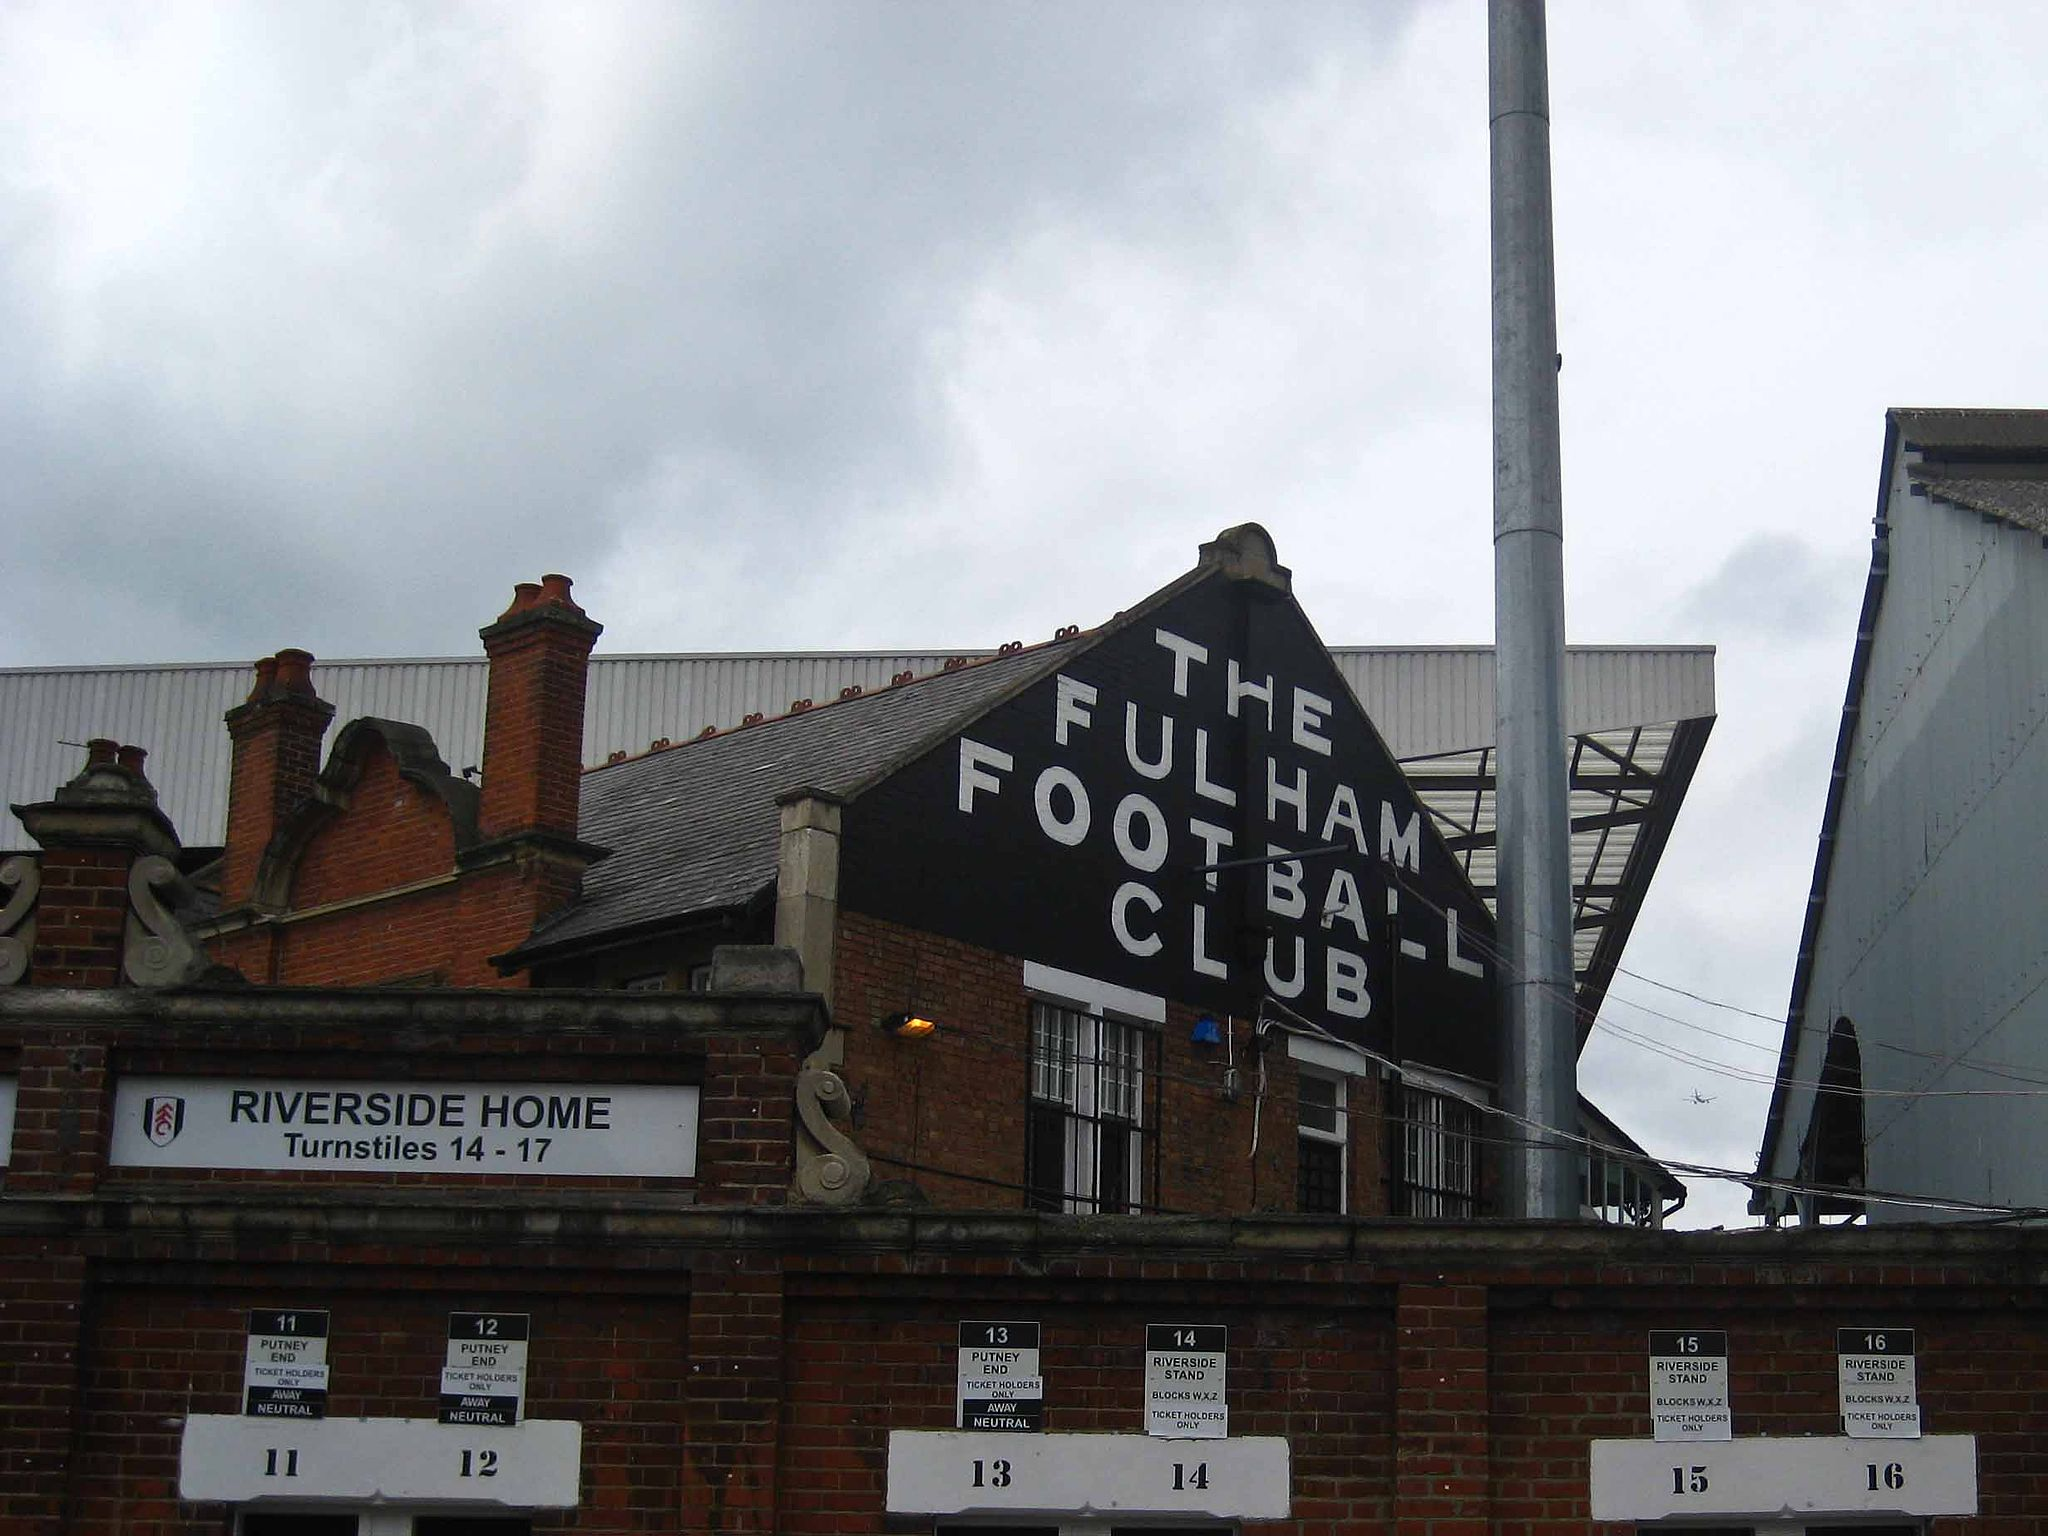 By Adam Stone (originally posted to Flickr as Craven Cottage) [CC-BY-2.0], via Wikimedia Commons